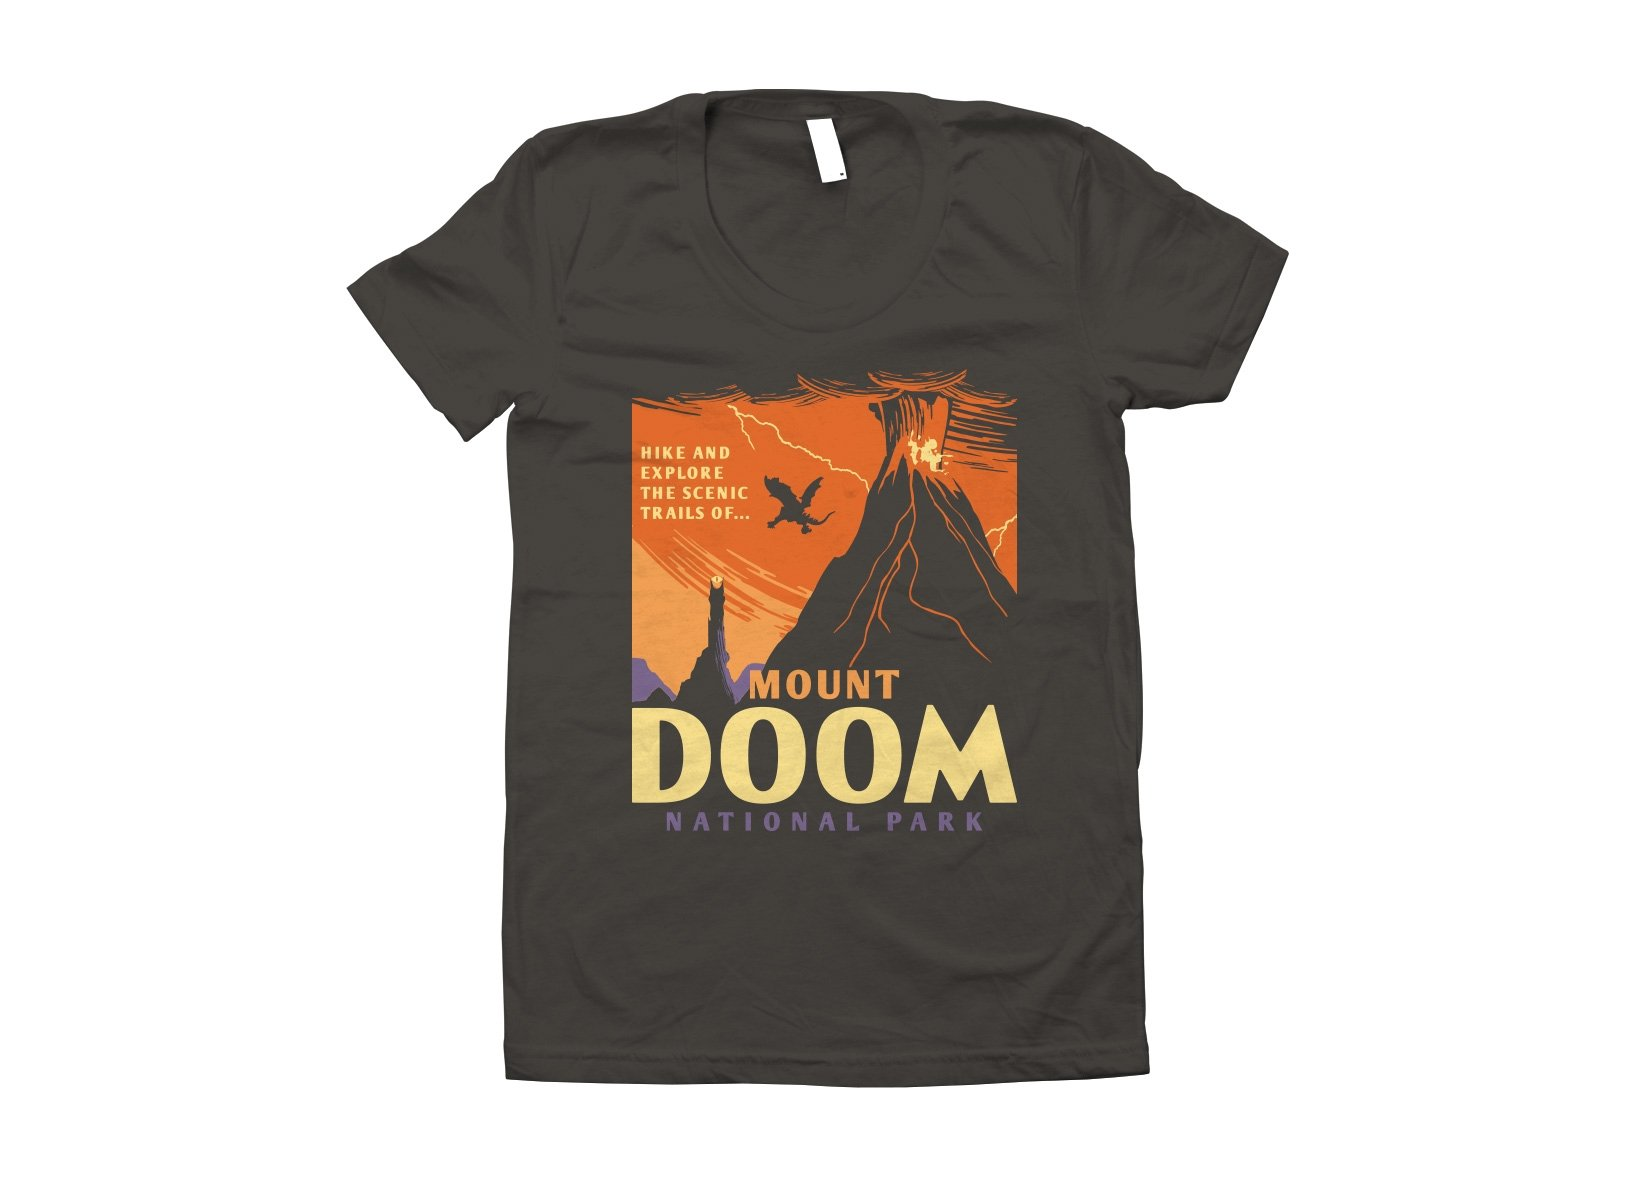 Mount Doom National Park on Juniors T-Shirt